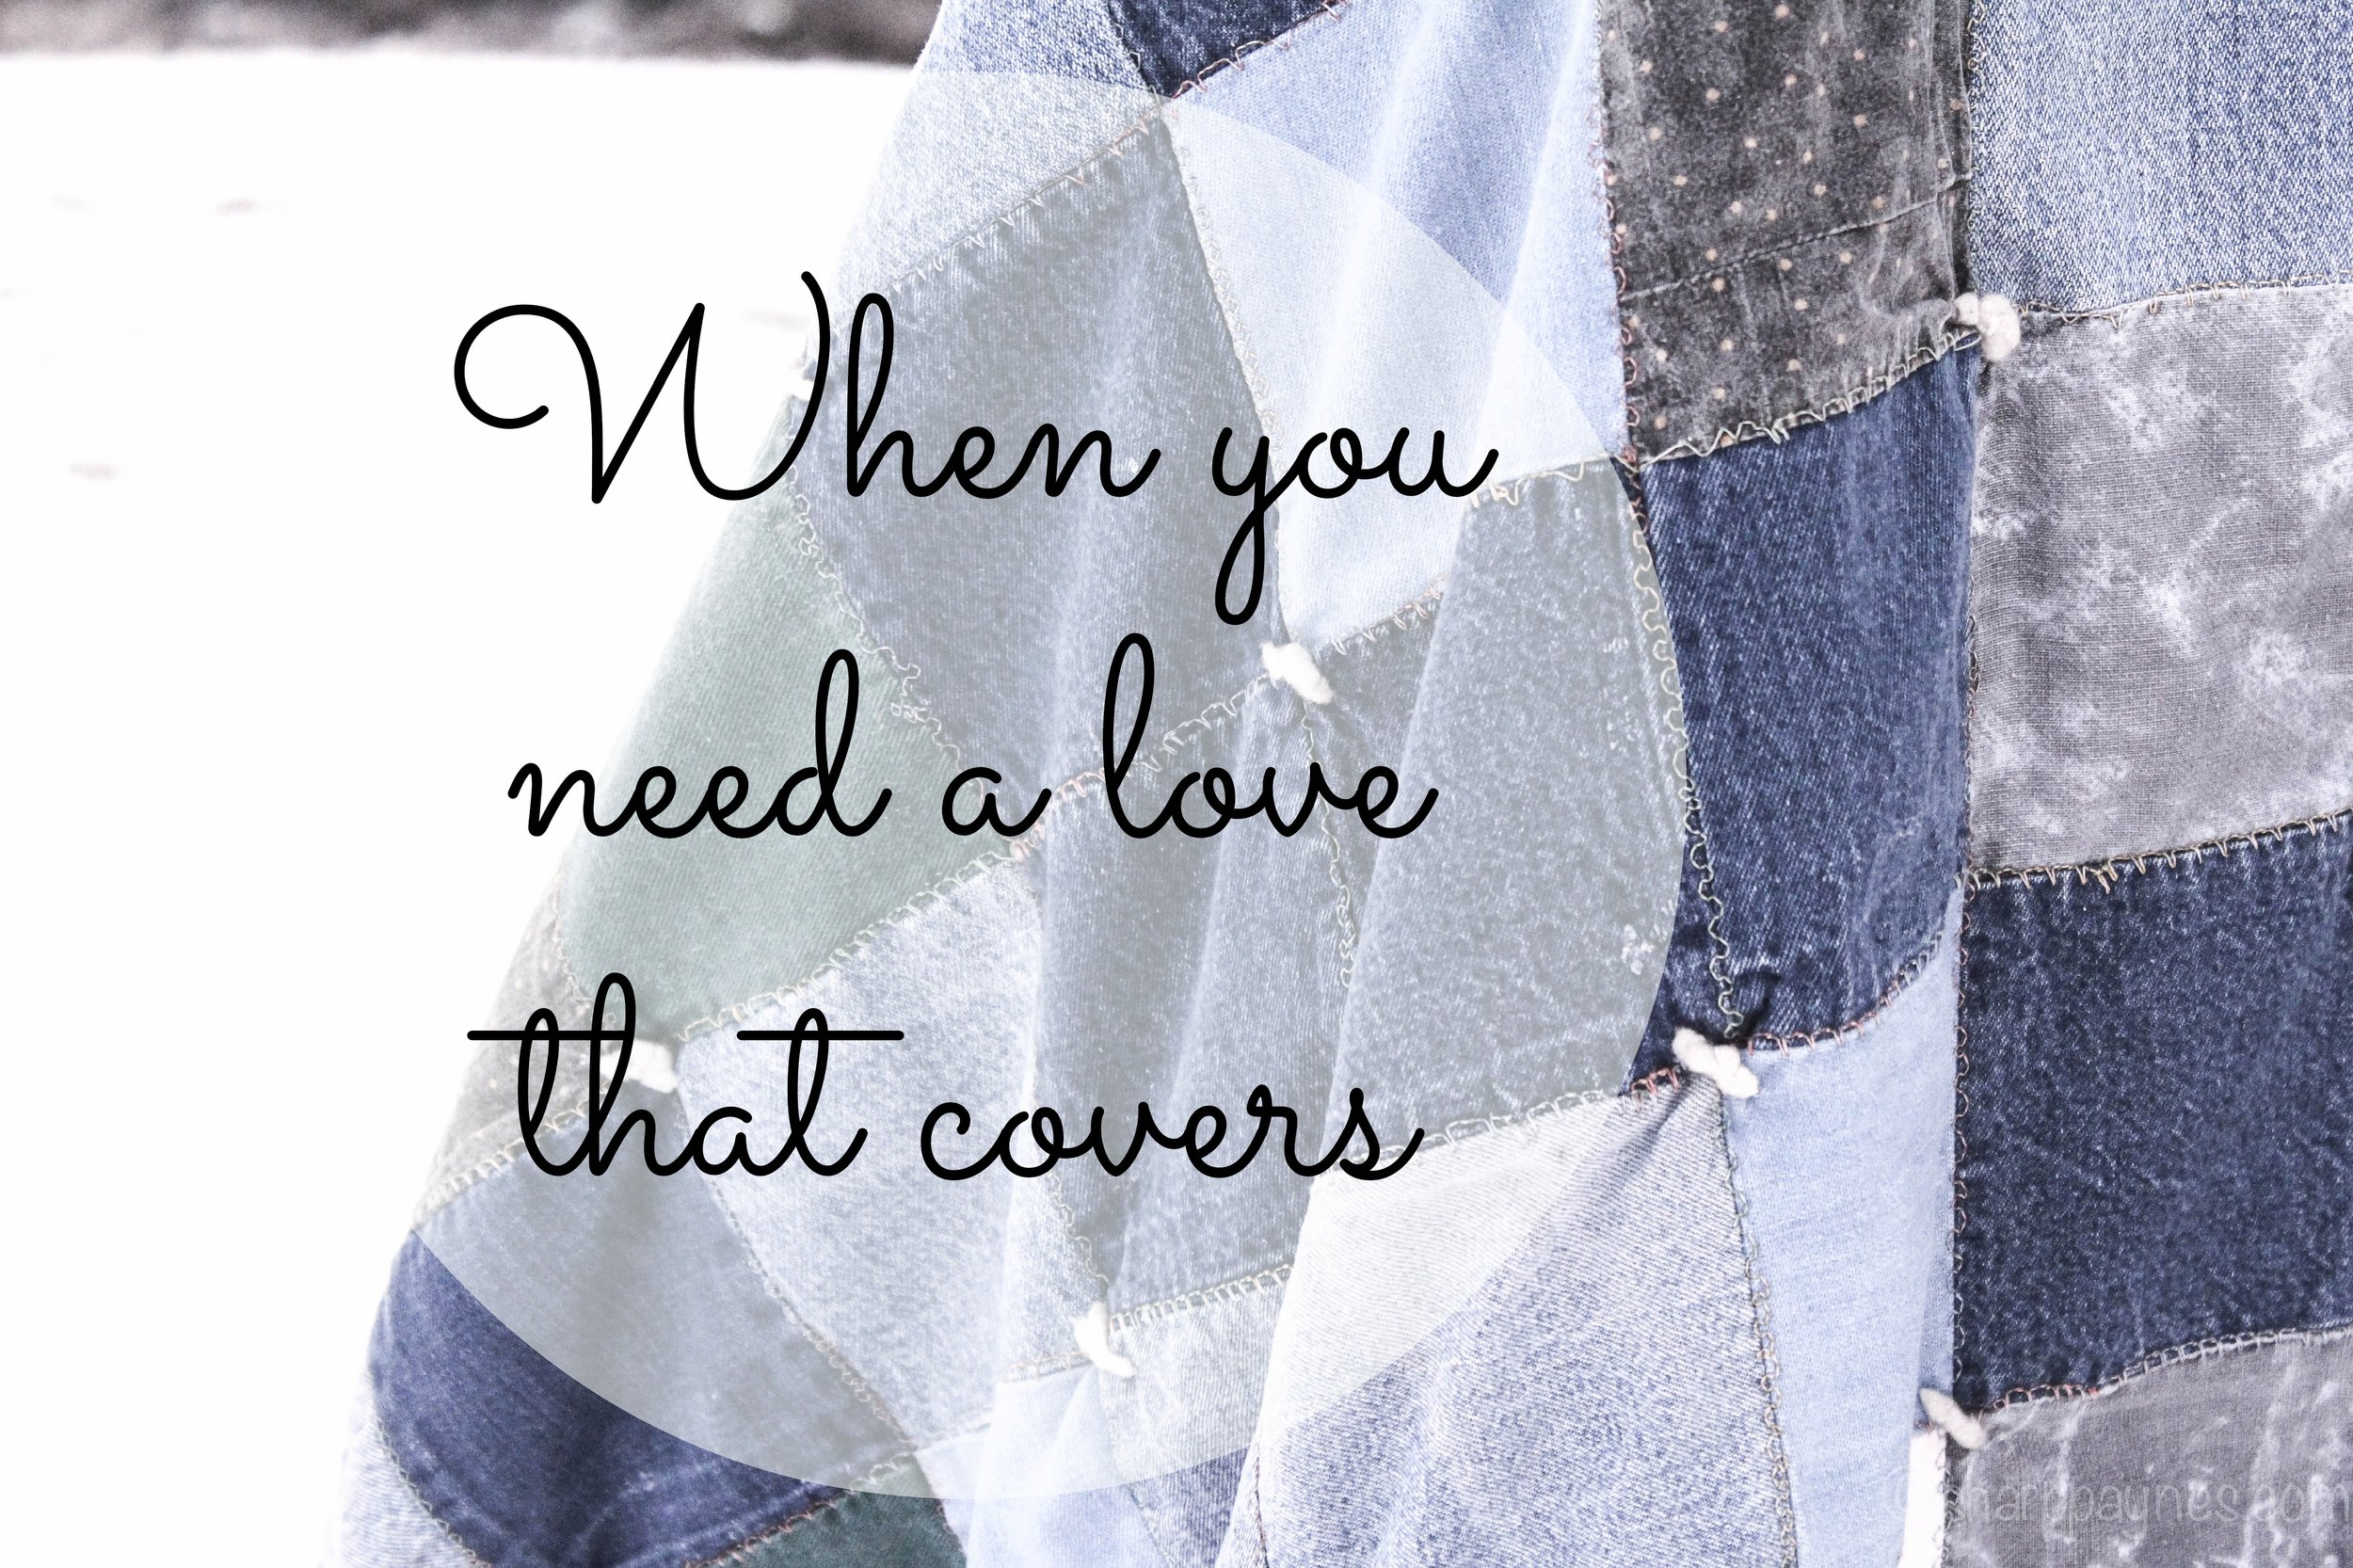 When you need a love that covers